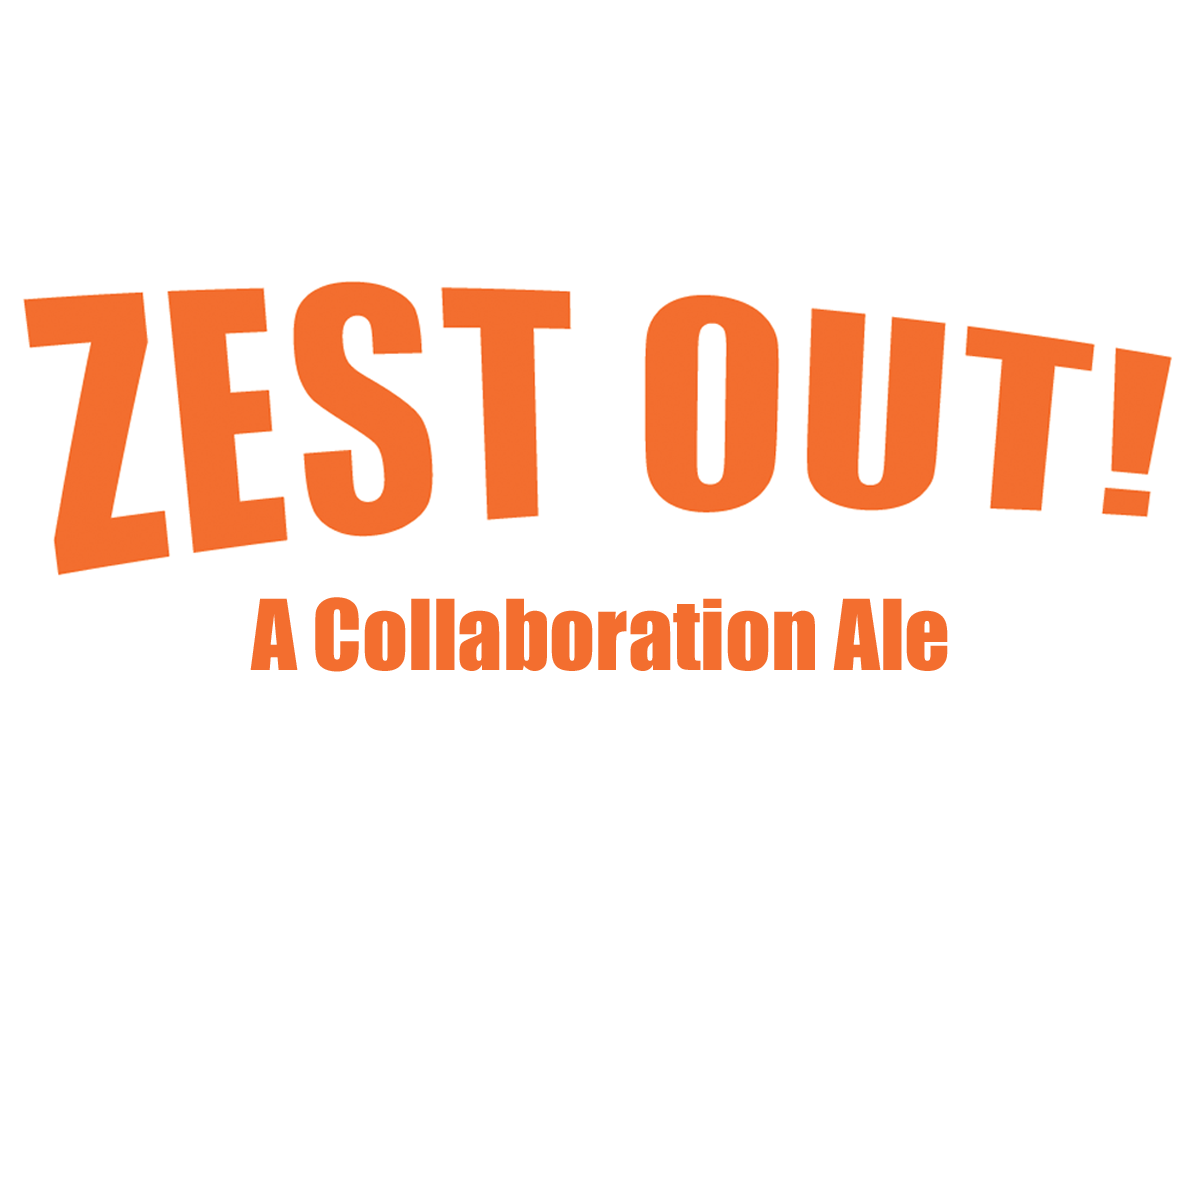 Zest Out! for Website.png